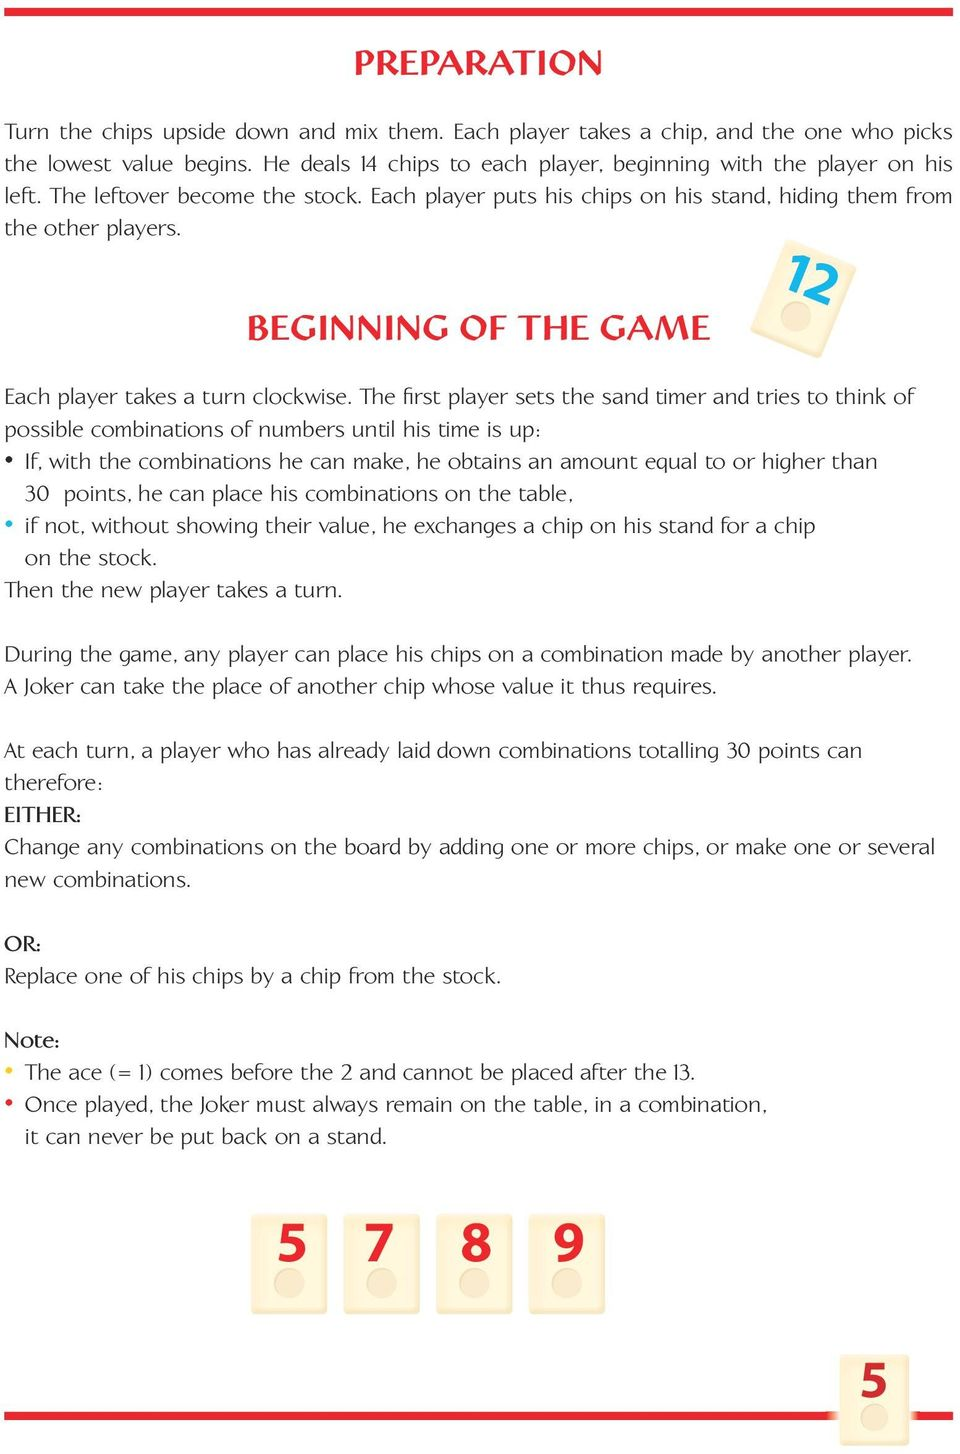 The first player sets the sand timer and tries to think of possible combinations of numbers until his time is up: If, with the combinations he can make, he obtains an amount equal to or higher than